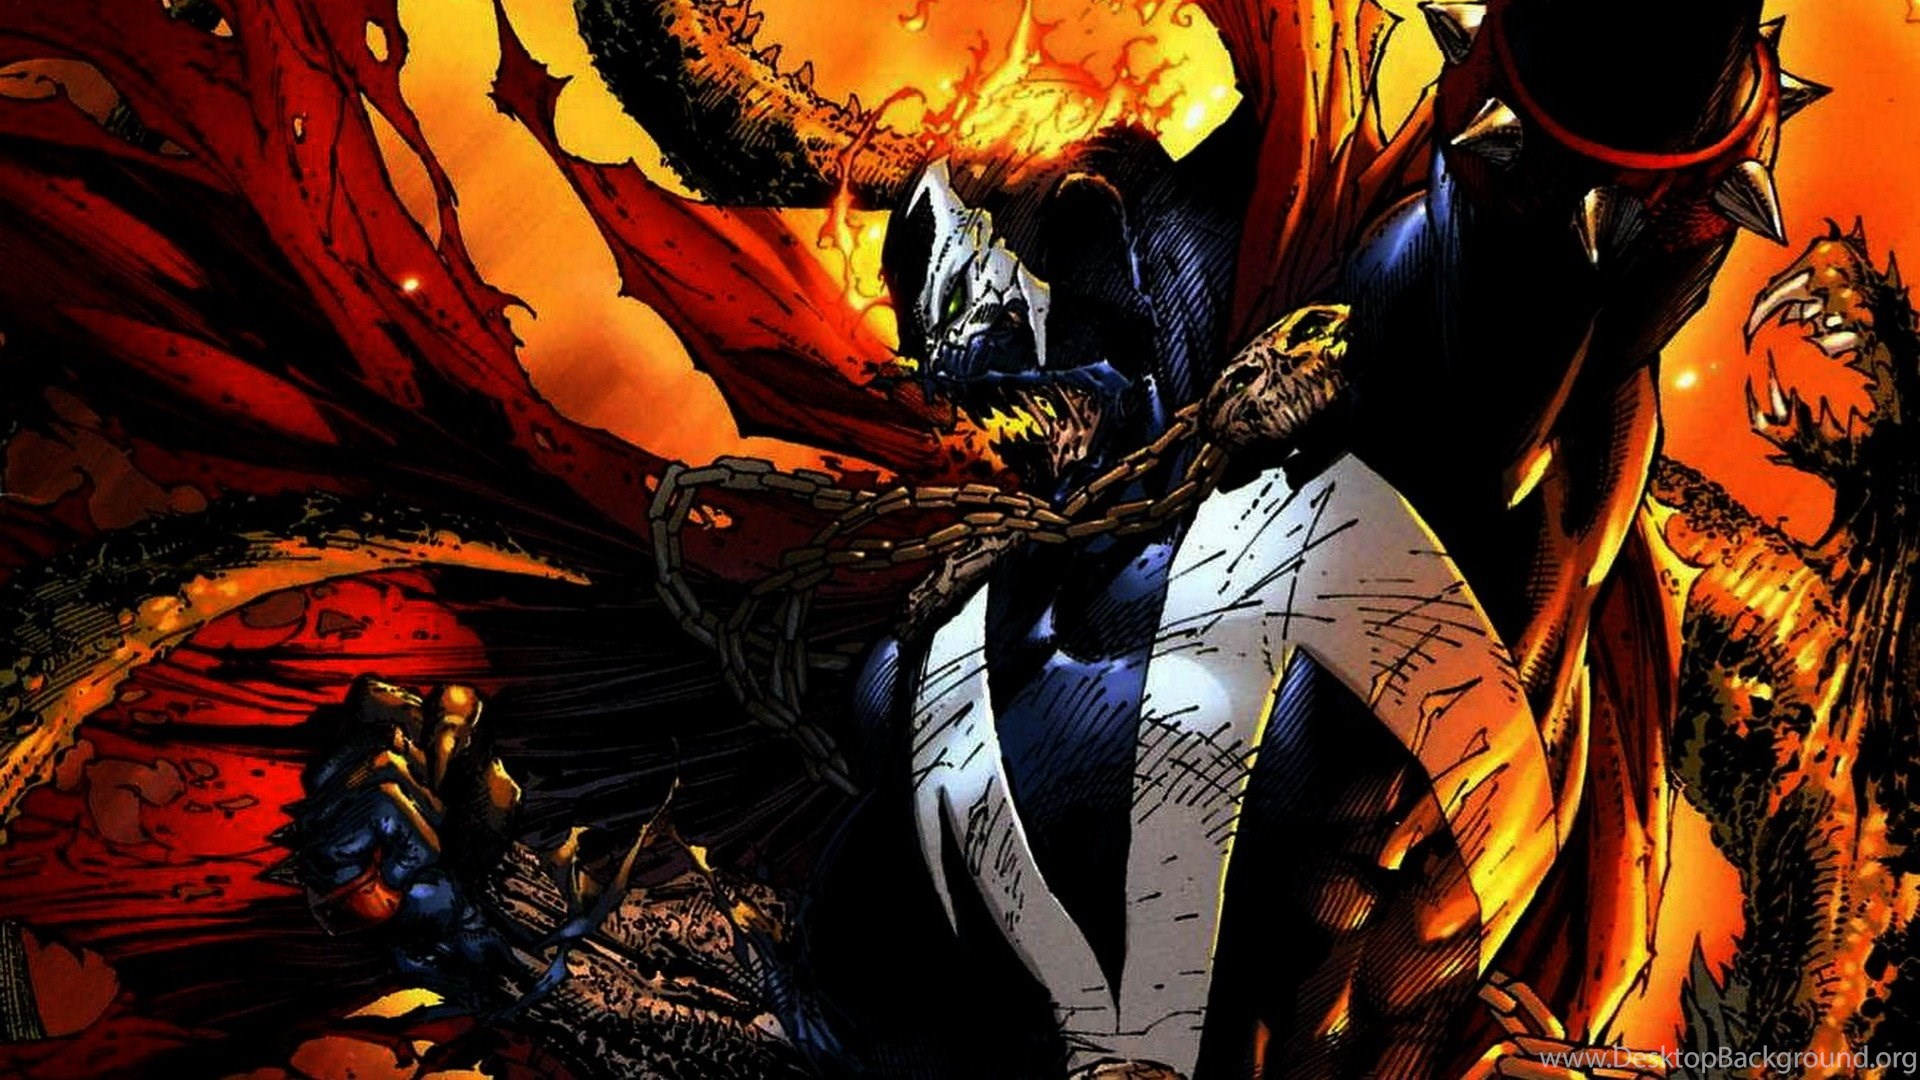 Spawn Wallpaper Hd 1920x1080: Spawn Wallpapers High Quality Desktop Background